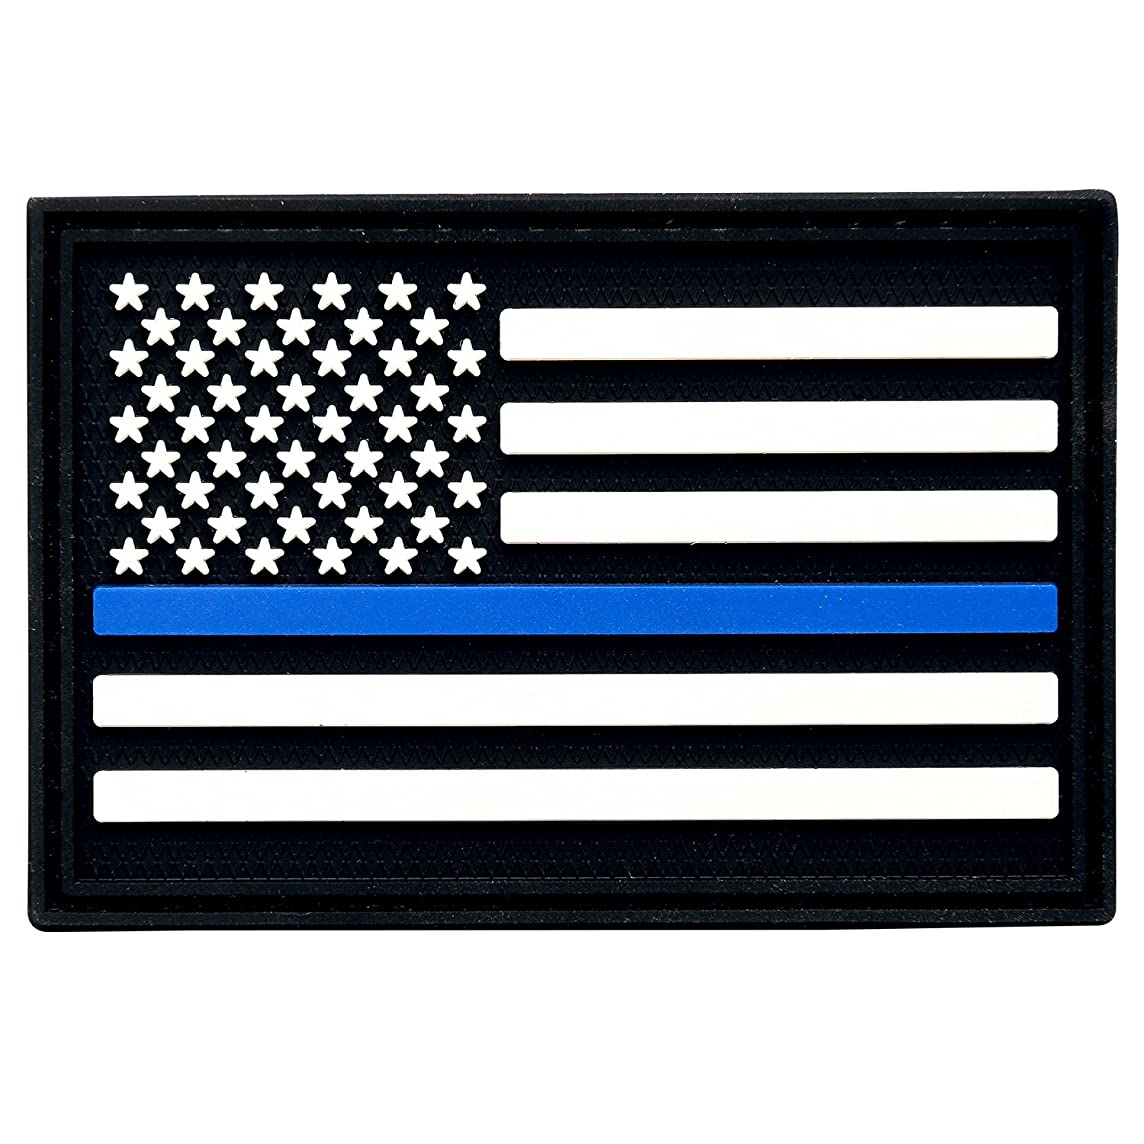 3V Gear Police Blue Line Support Moral Patch | Rigid PCV Molded with Hook-Back | 2 x 3 inches | 3-D Molded